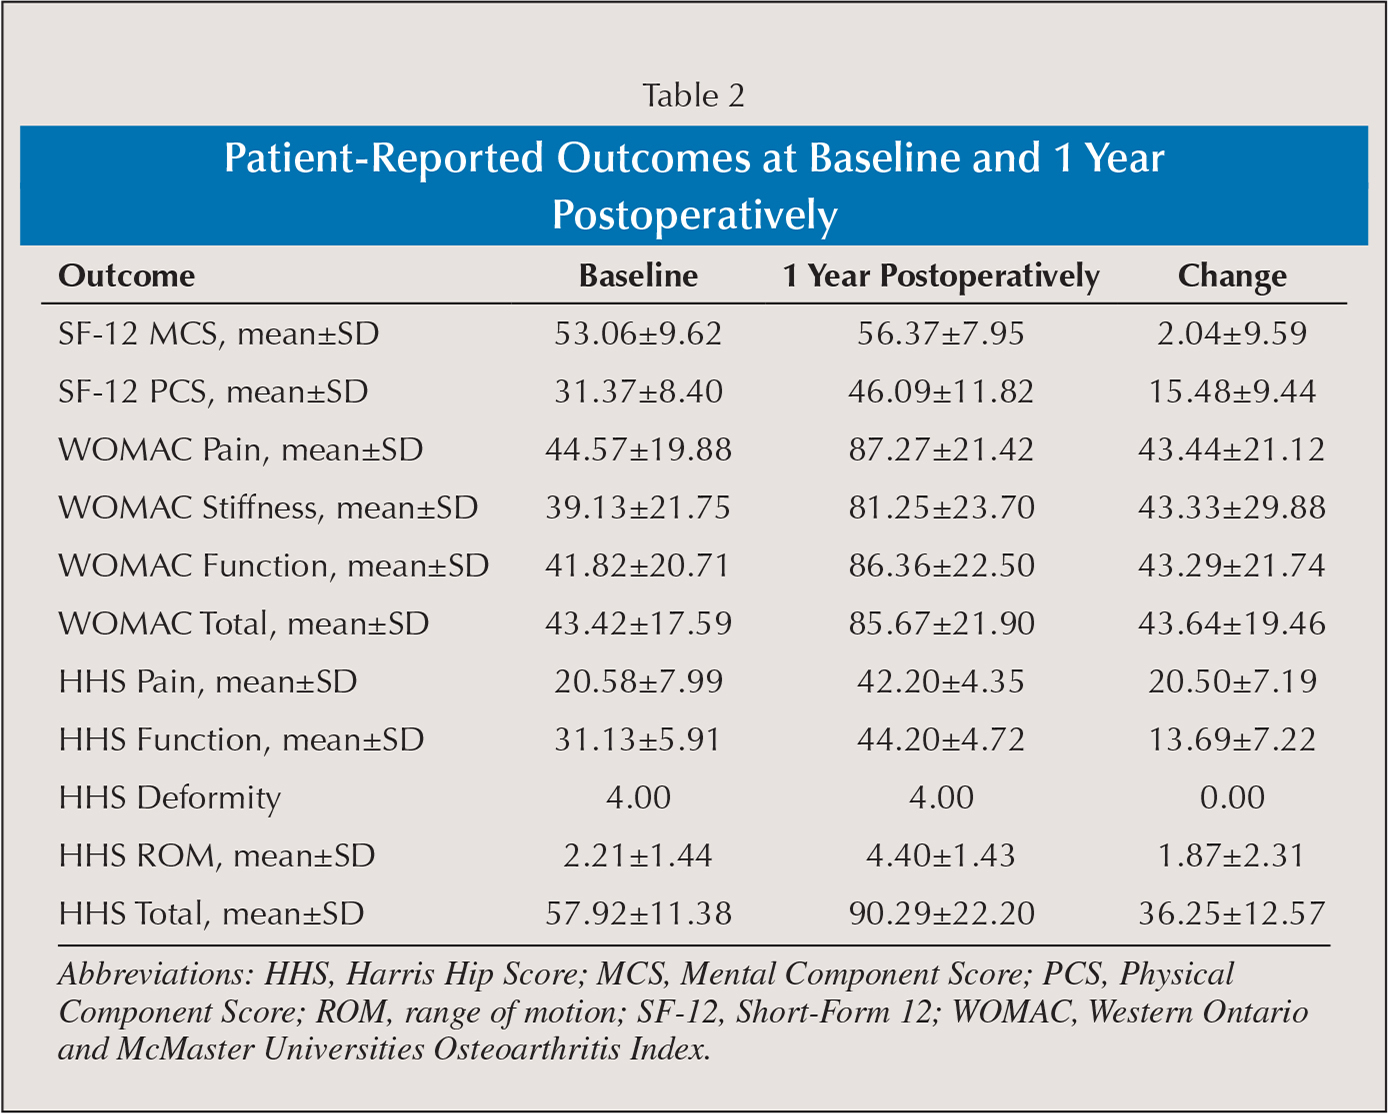 Patient-Reported Outcomes at Baseline and 1 Year Postoperatively